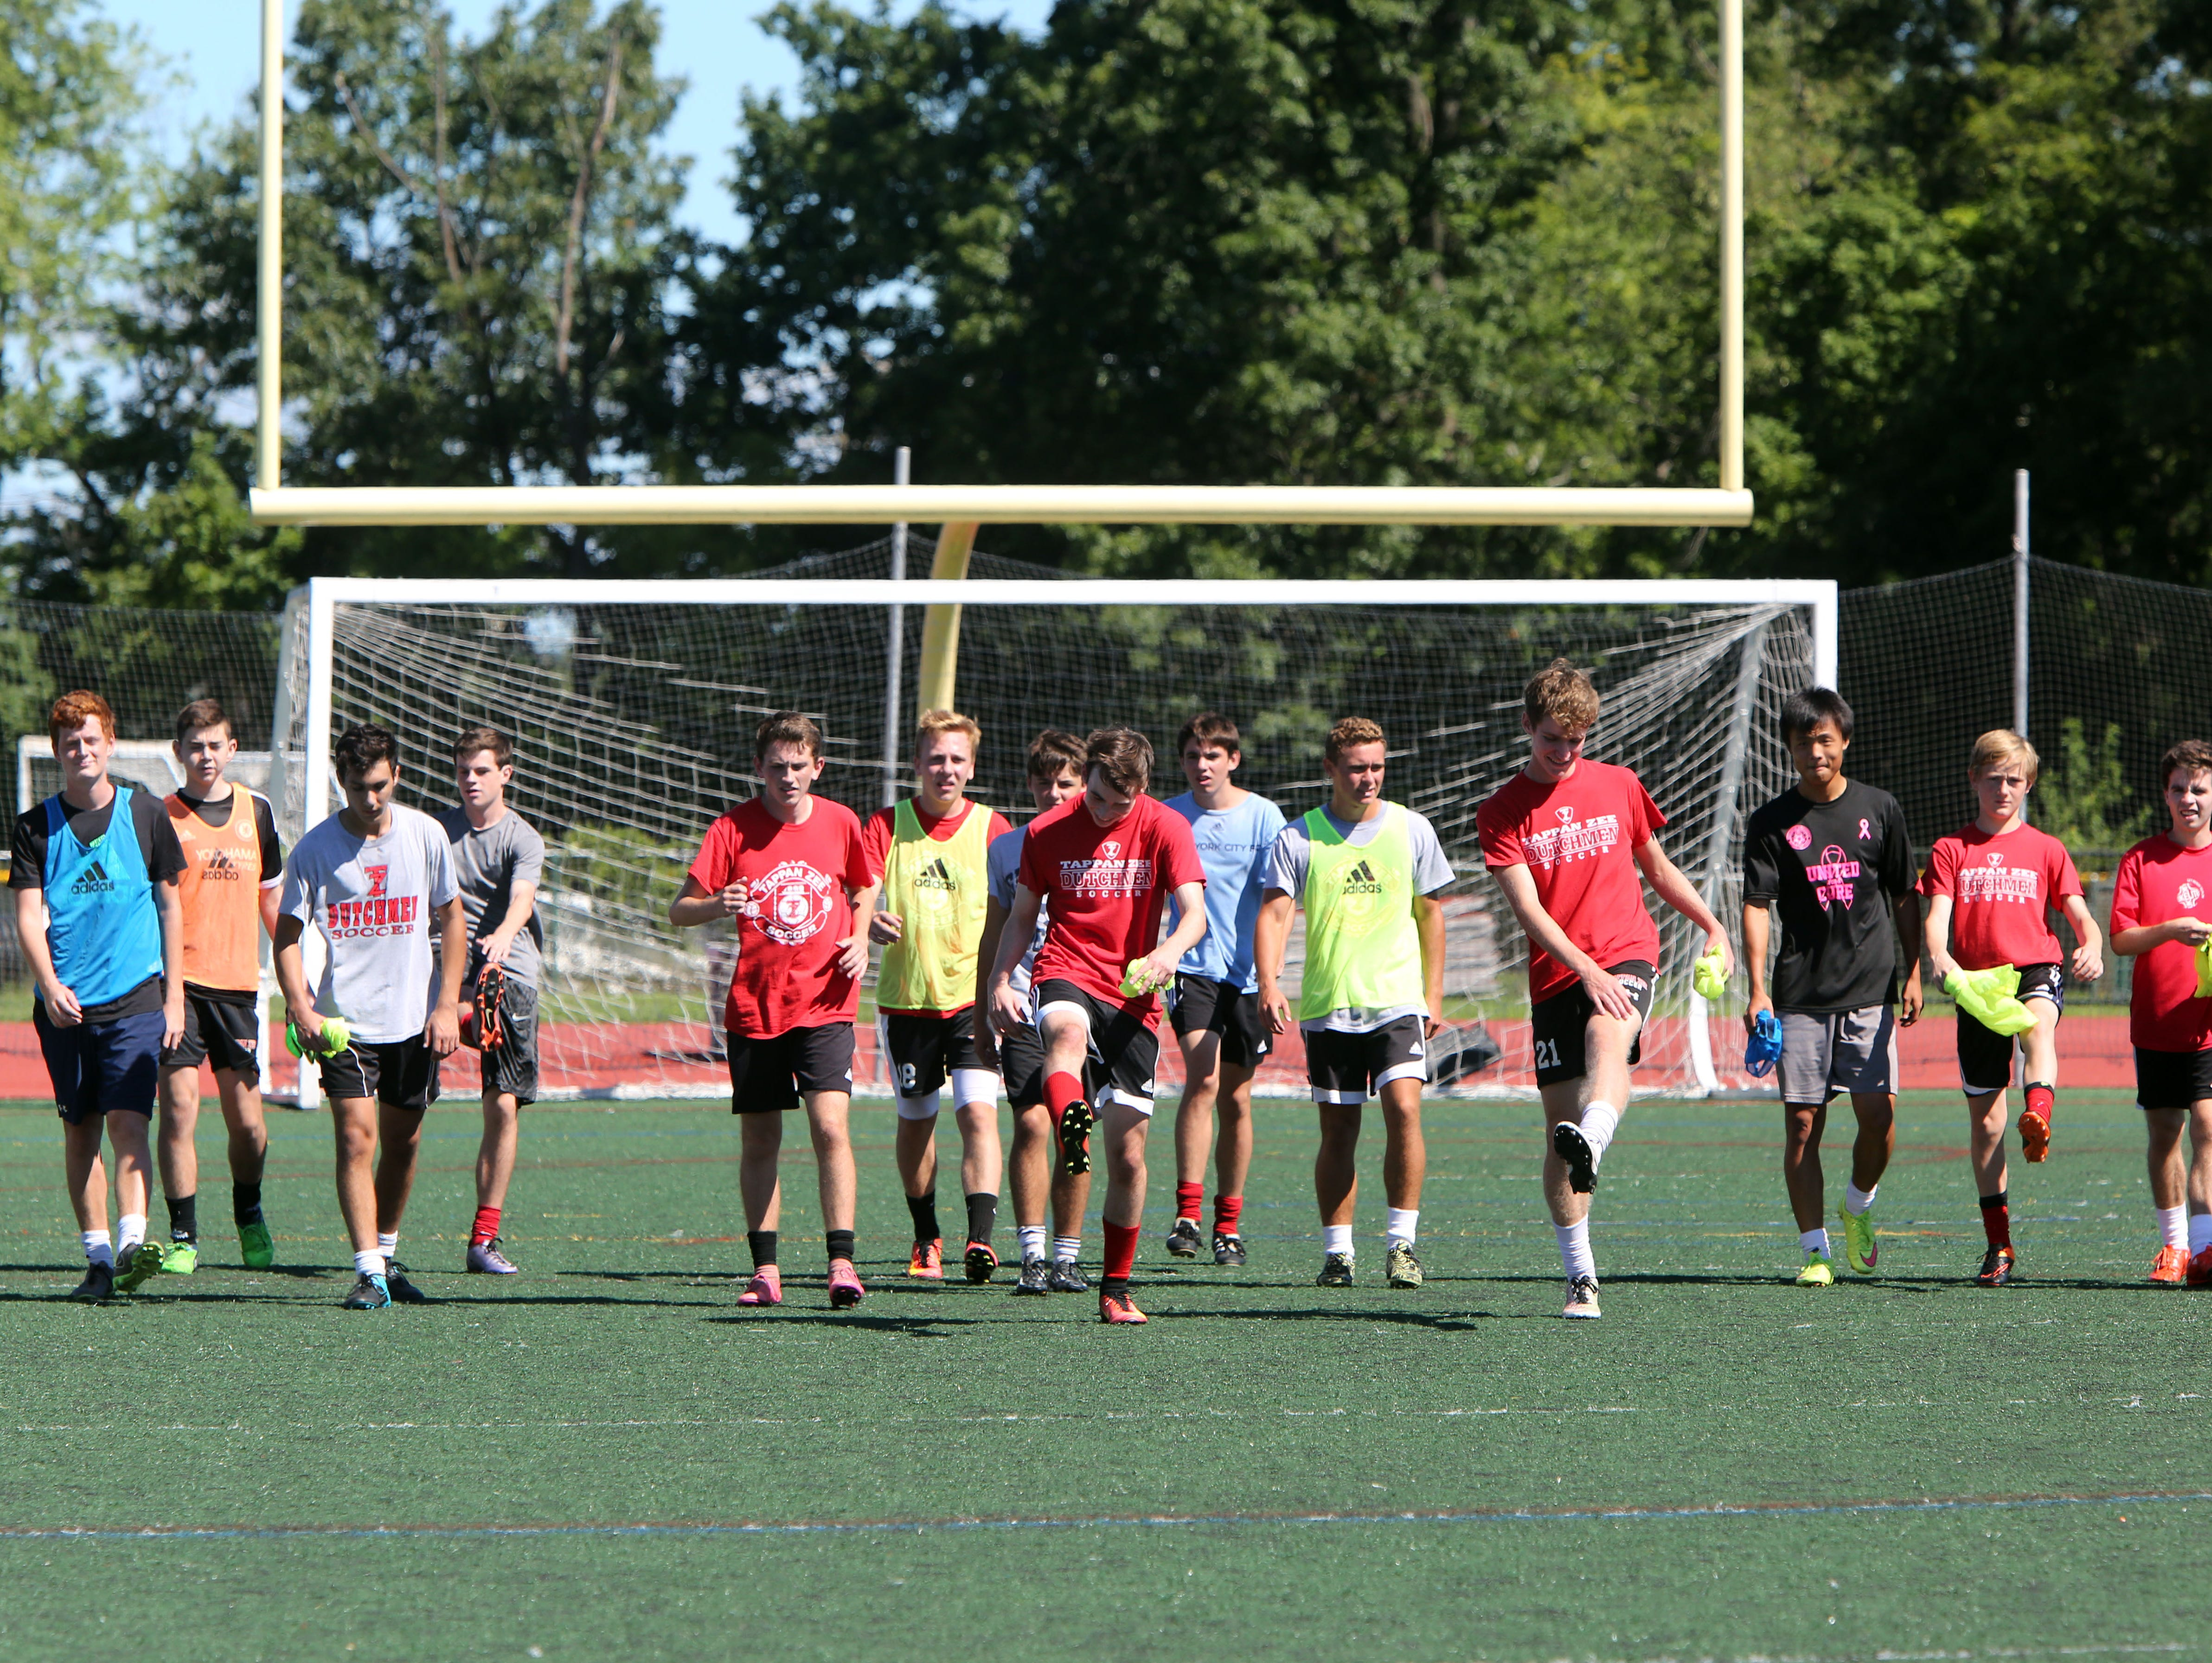 Players cool down after the morning session of the first day of soccer practice at Tappan Zee High School Aug. 22, 2016.